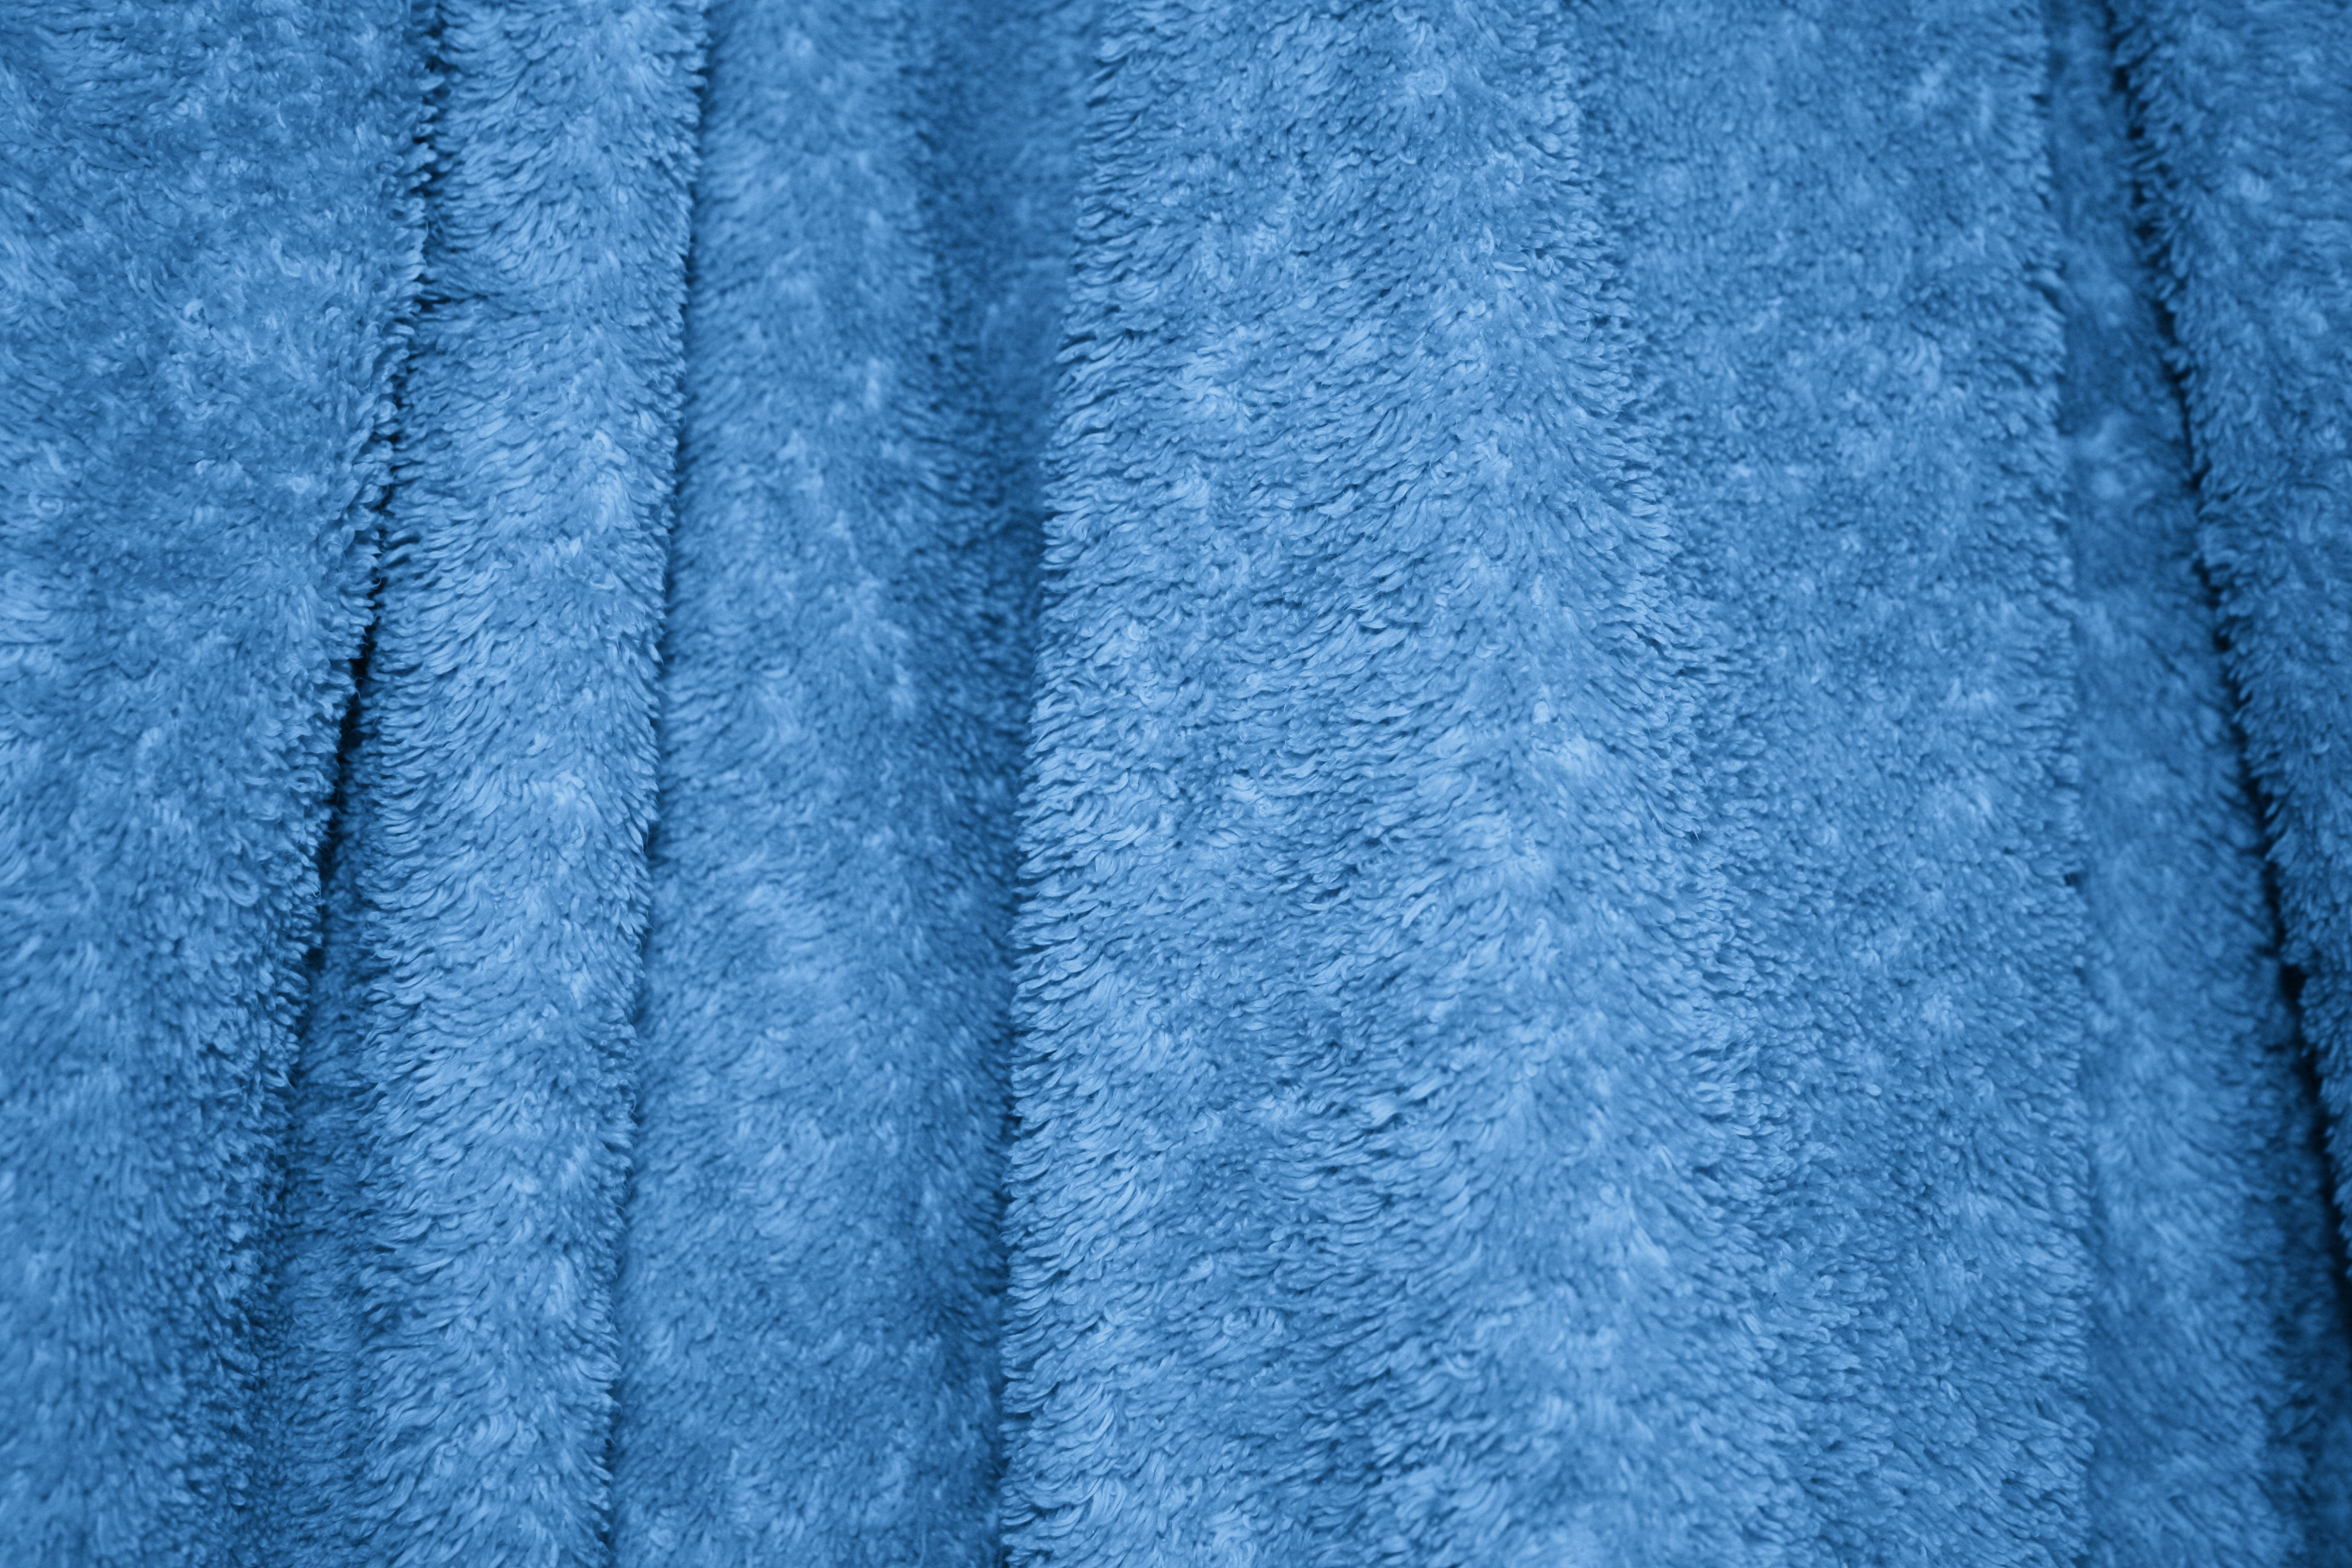 Blue Terry Cloth Bath Towel Texture Picture   Free Photograph   Photos